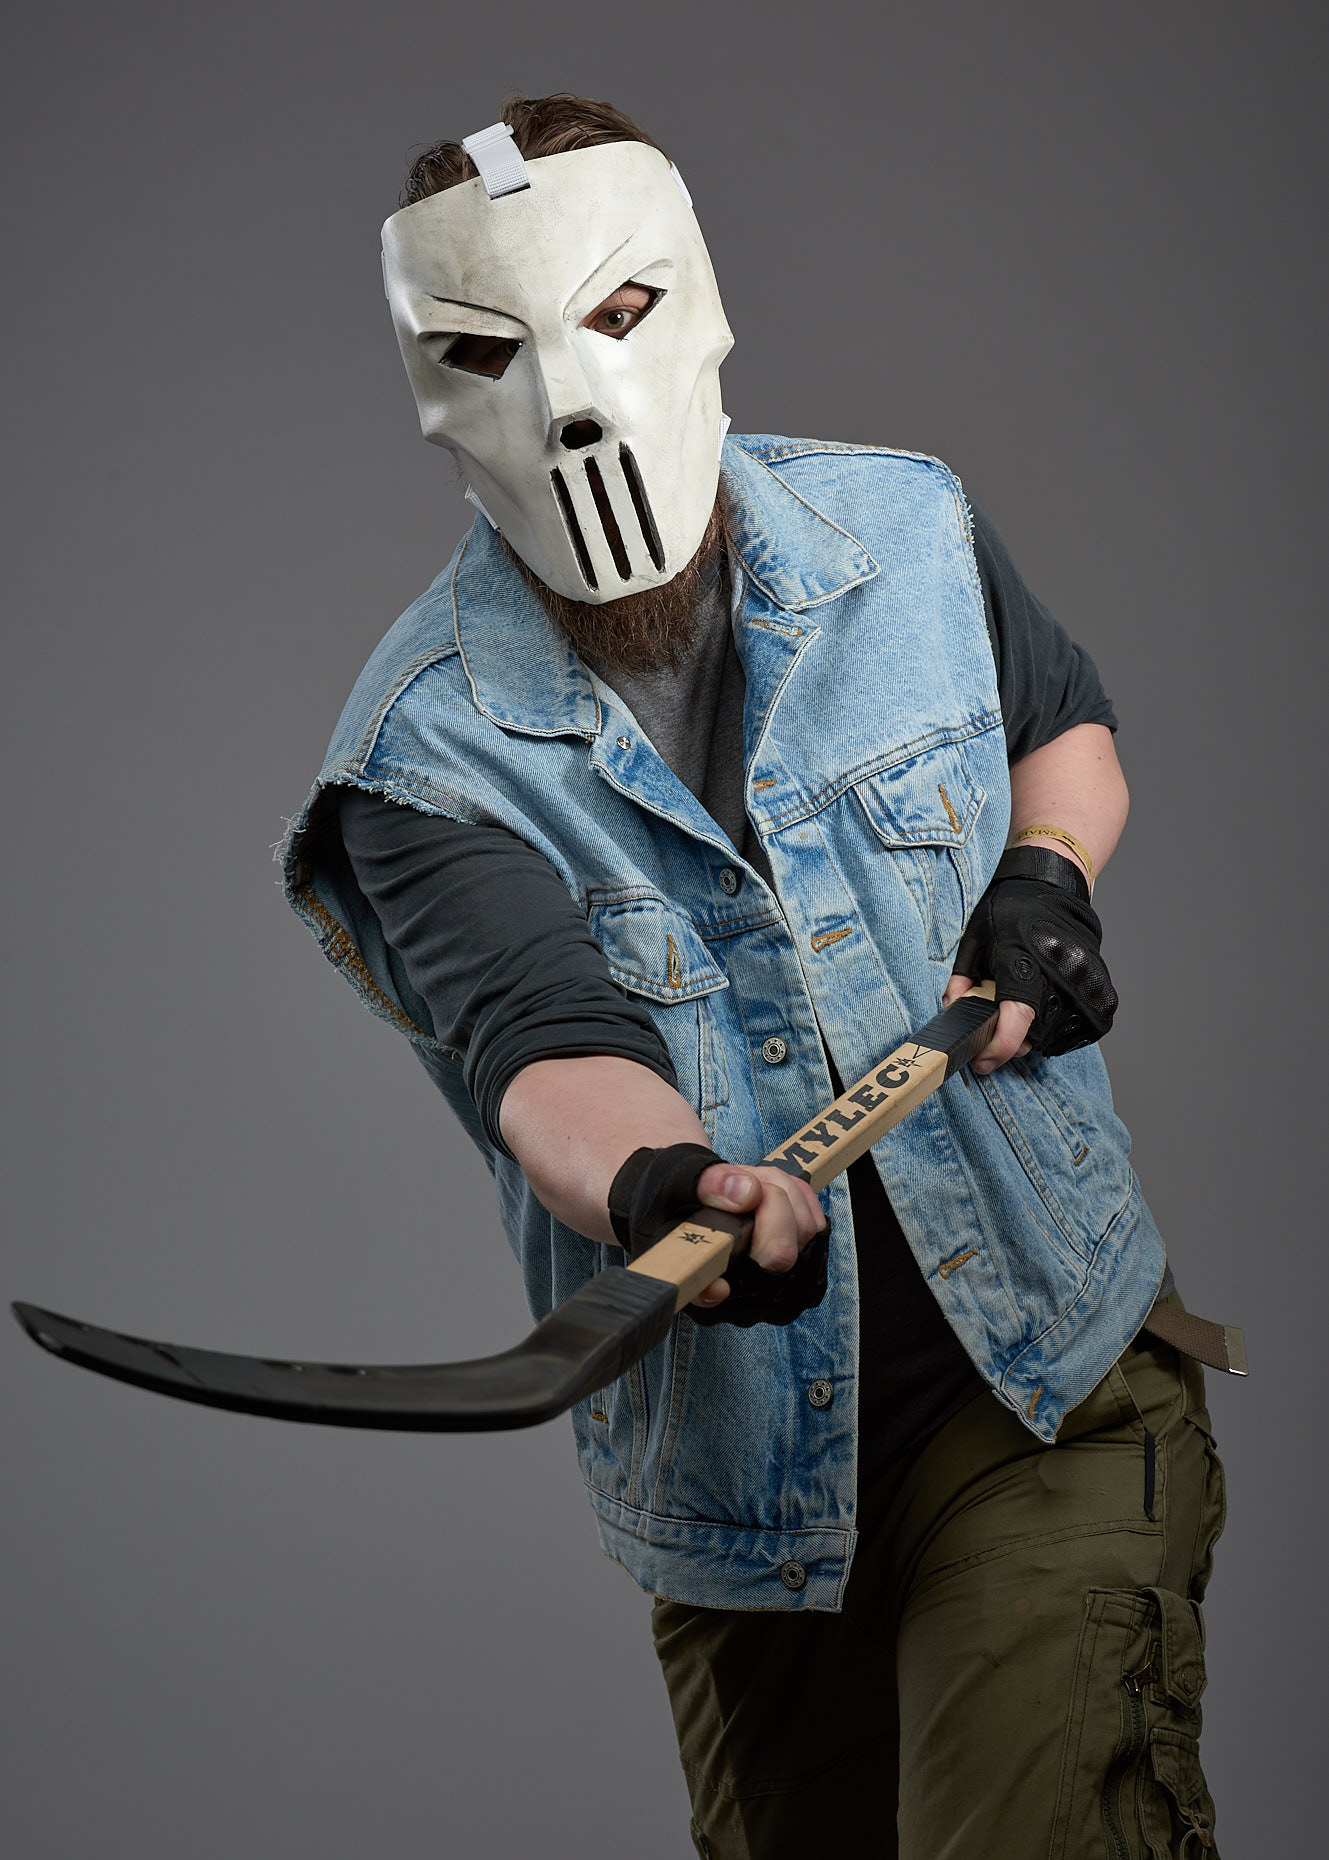 cosplay_tmnt_casey_jones